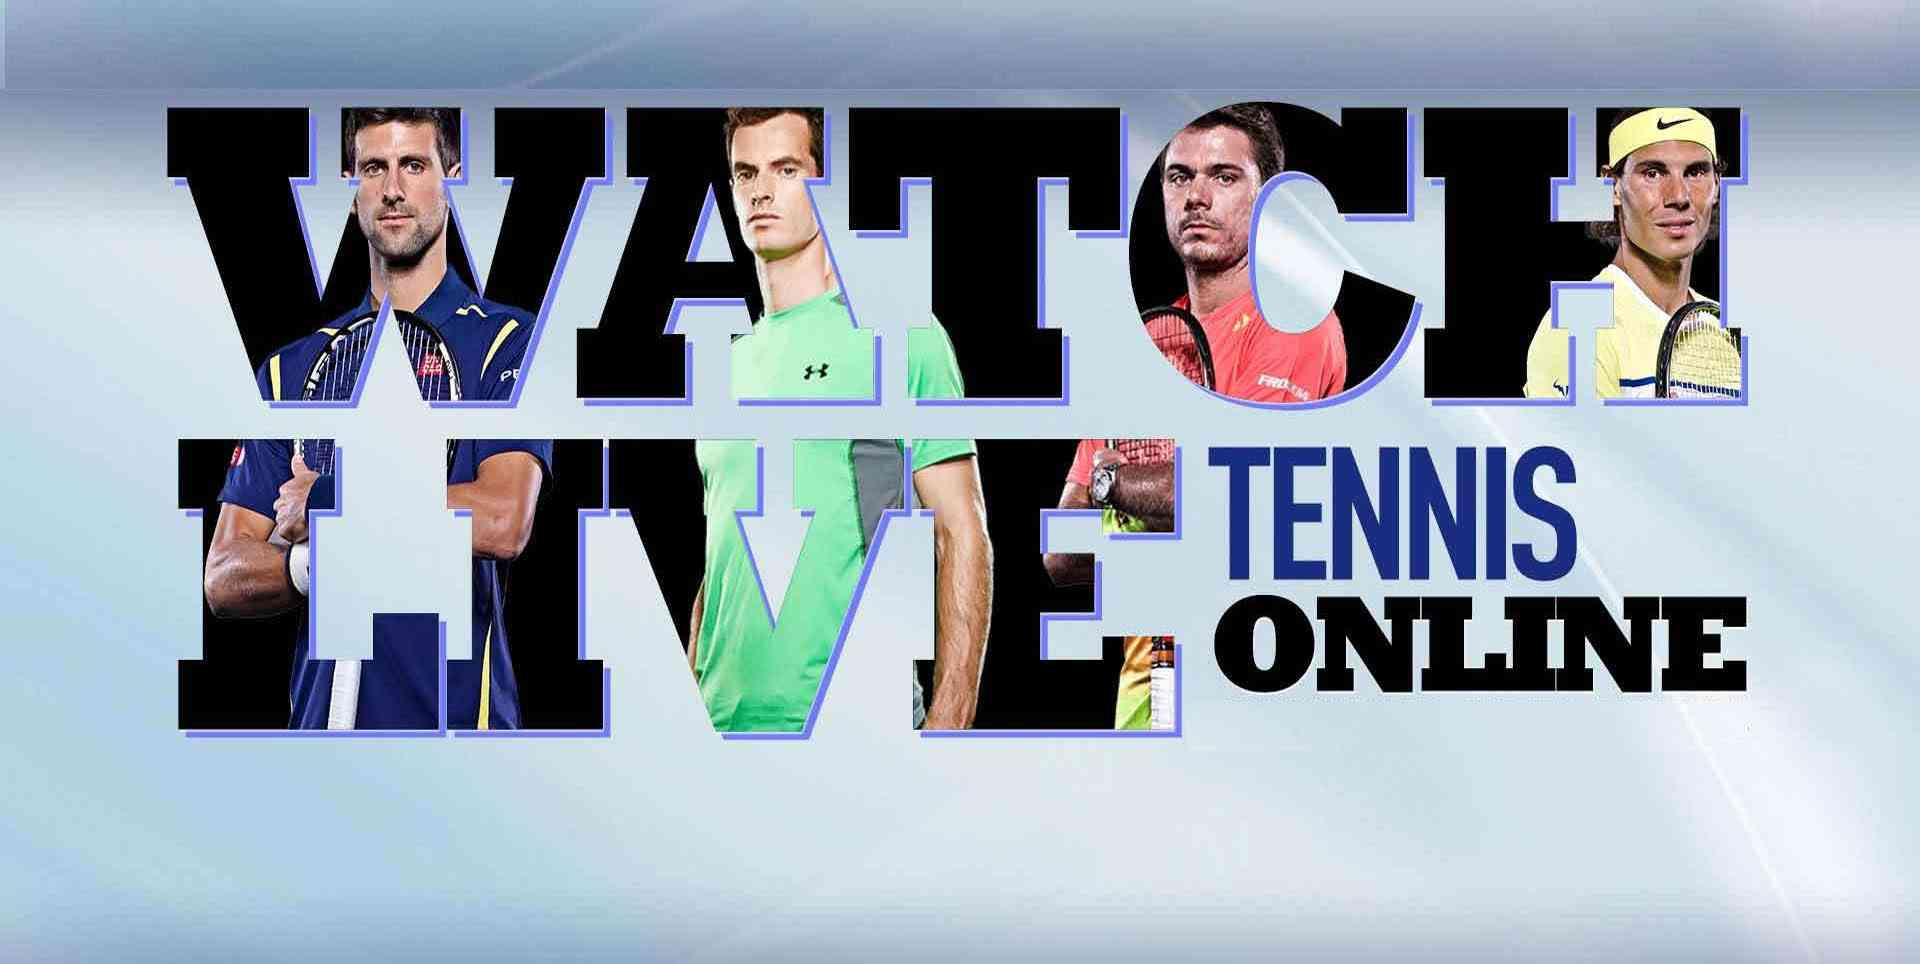 watch-2nd-round-d.-ferrer-vs-a.-kuznetsov-online